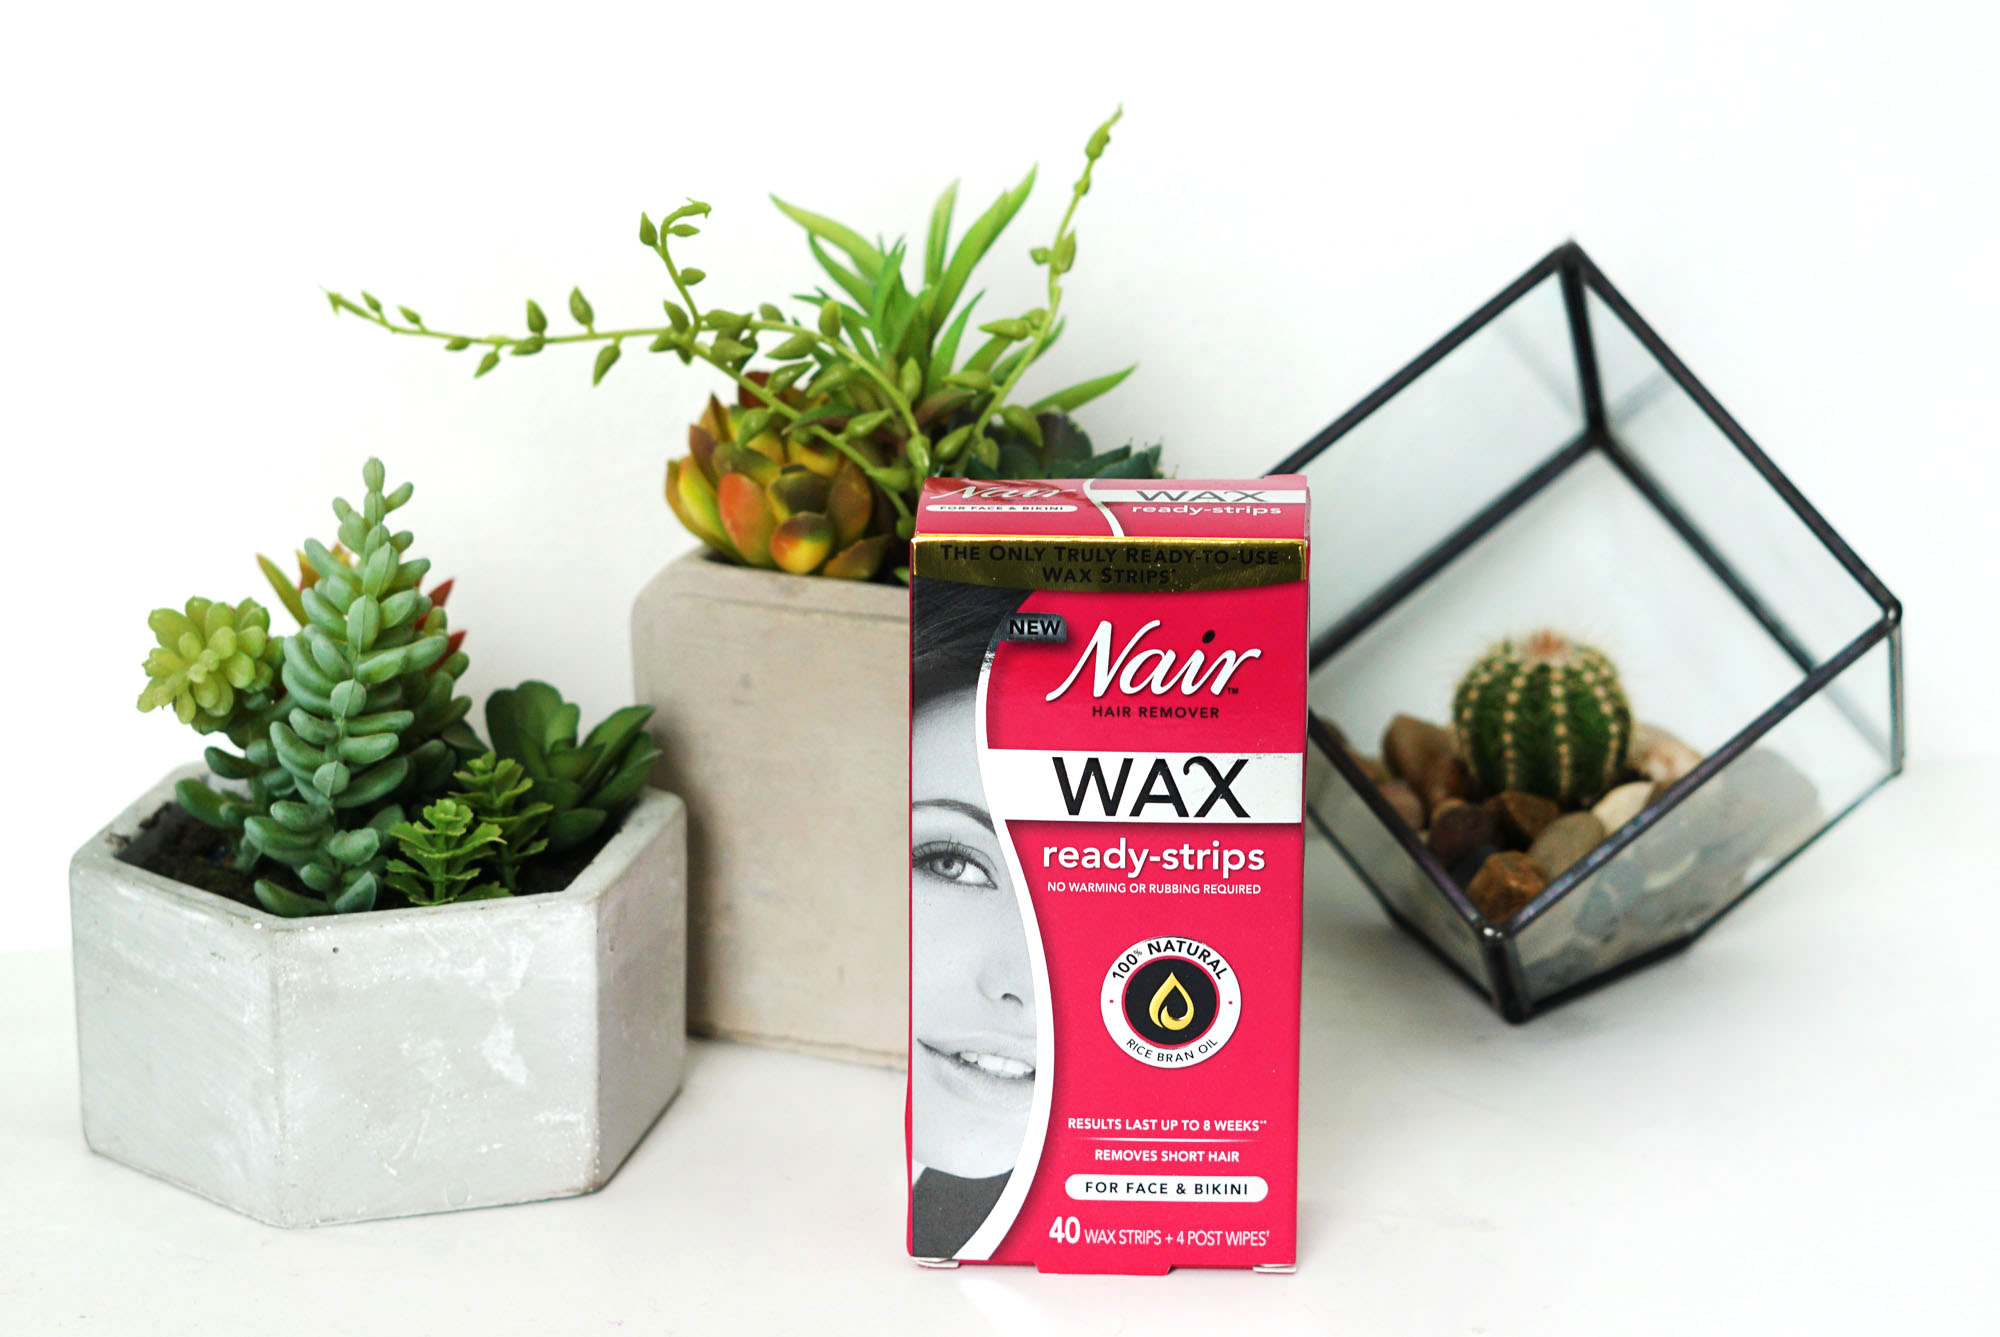 Nair Ready Wax Strips Review & Giveaway